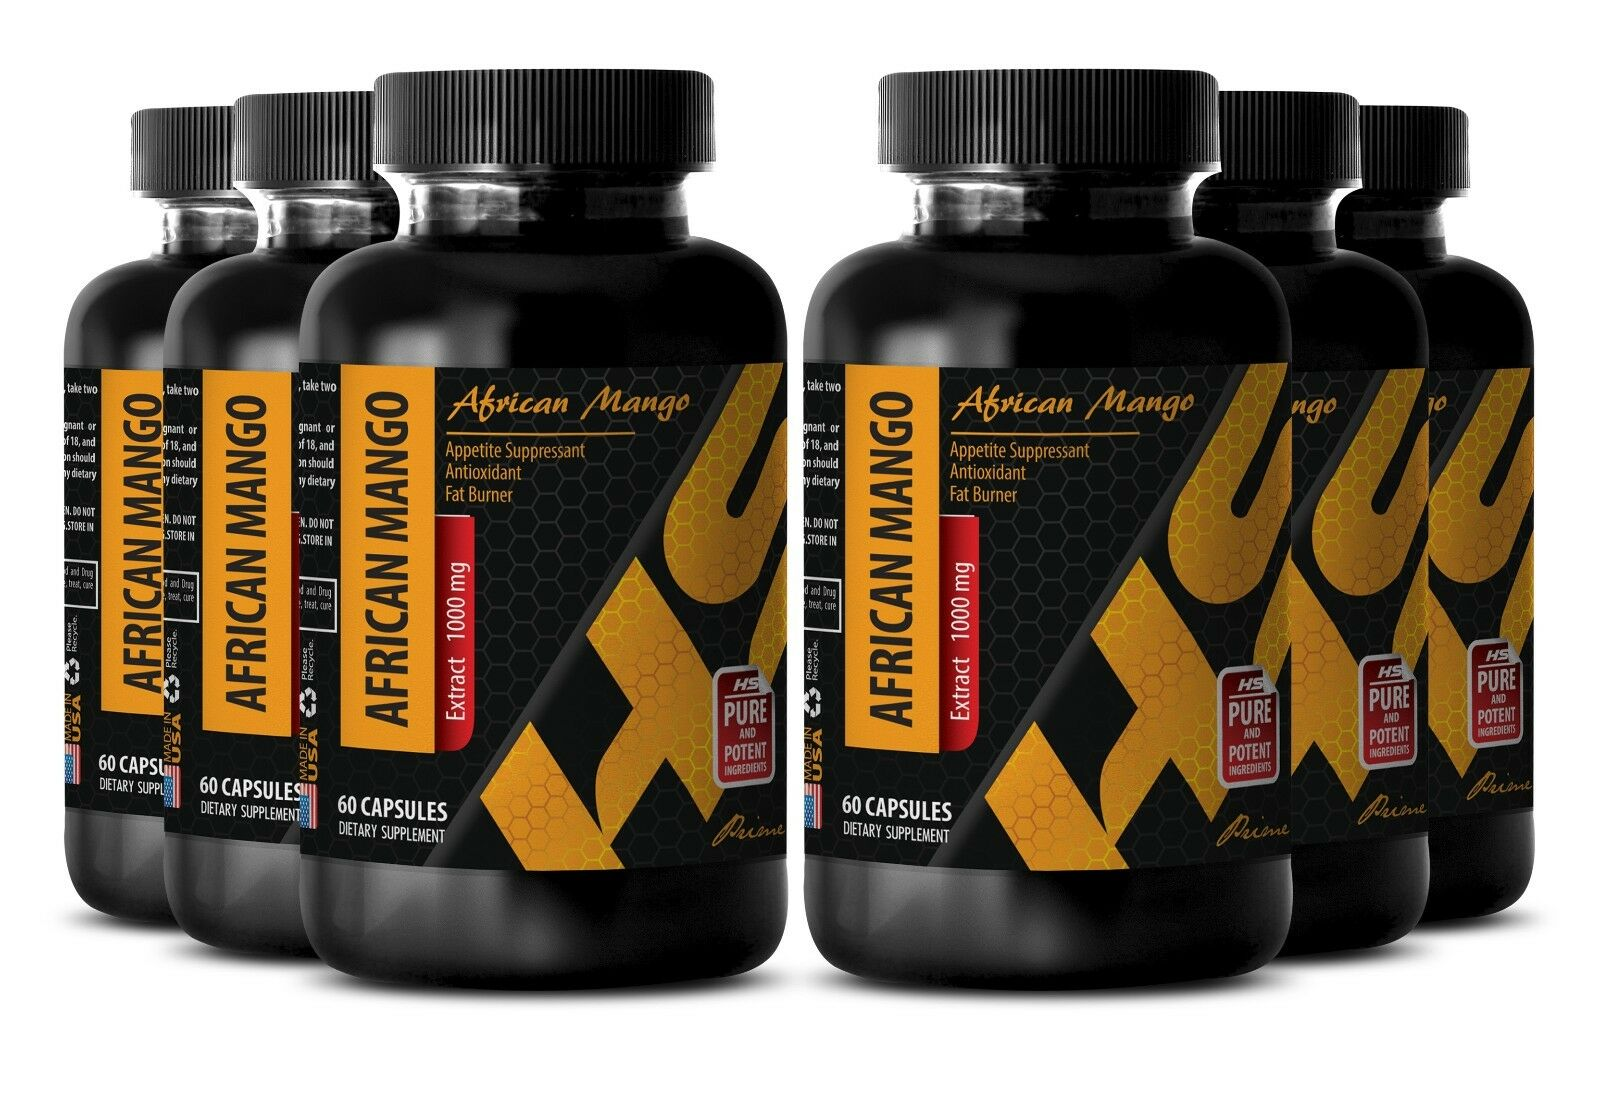 Herbal weight loss - PURE AFRICAN MANGO EXTRACT 1000mg 6 Bottles 360 Capsules